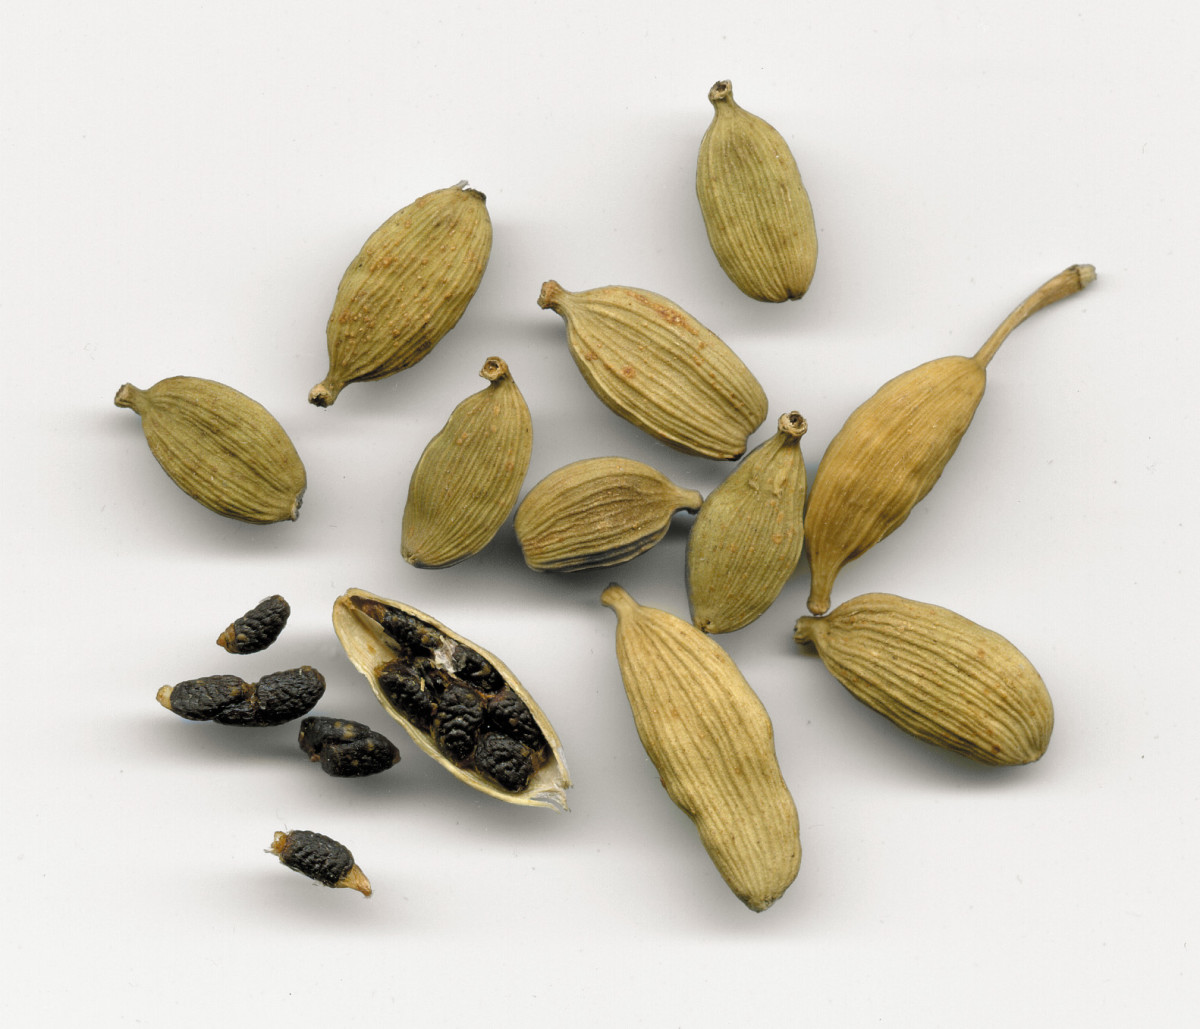 Harmful Effects and Drug Interactions of Aromatic Culinary Spices Cardamom, Cinnamom, Clove, and Nutmeg